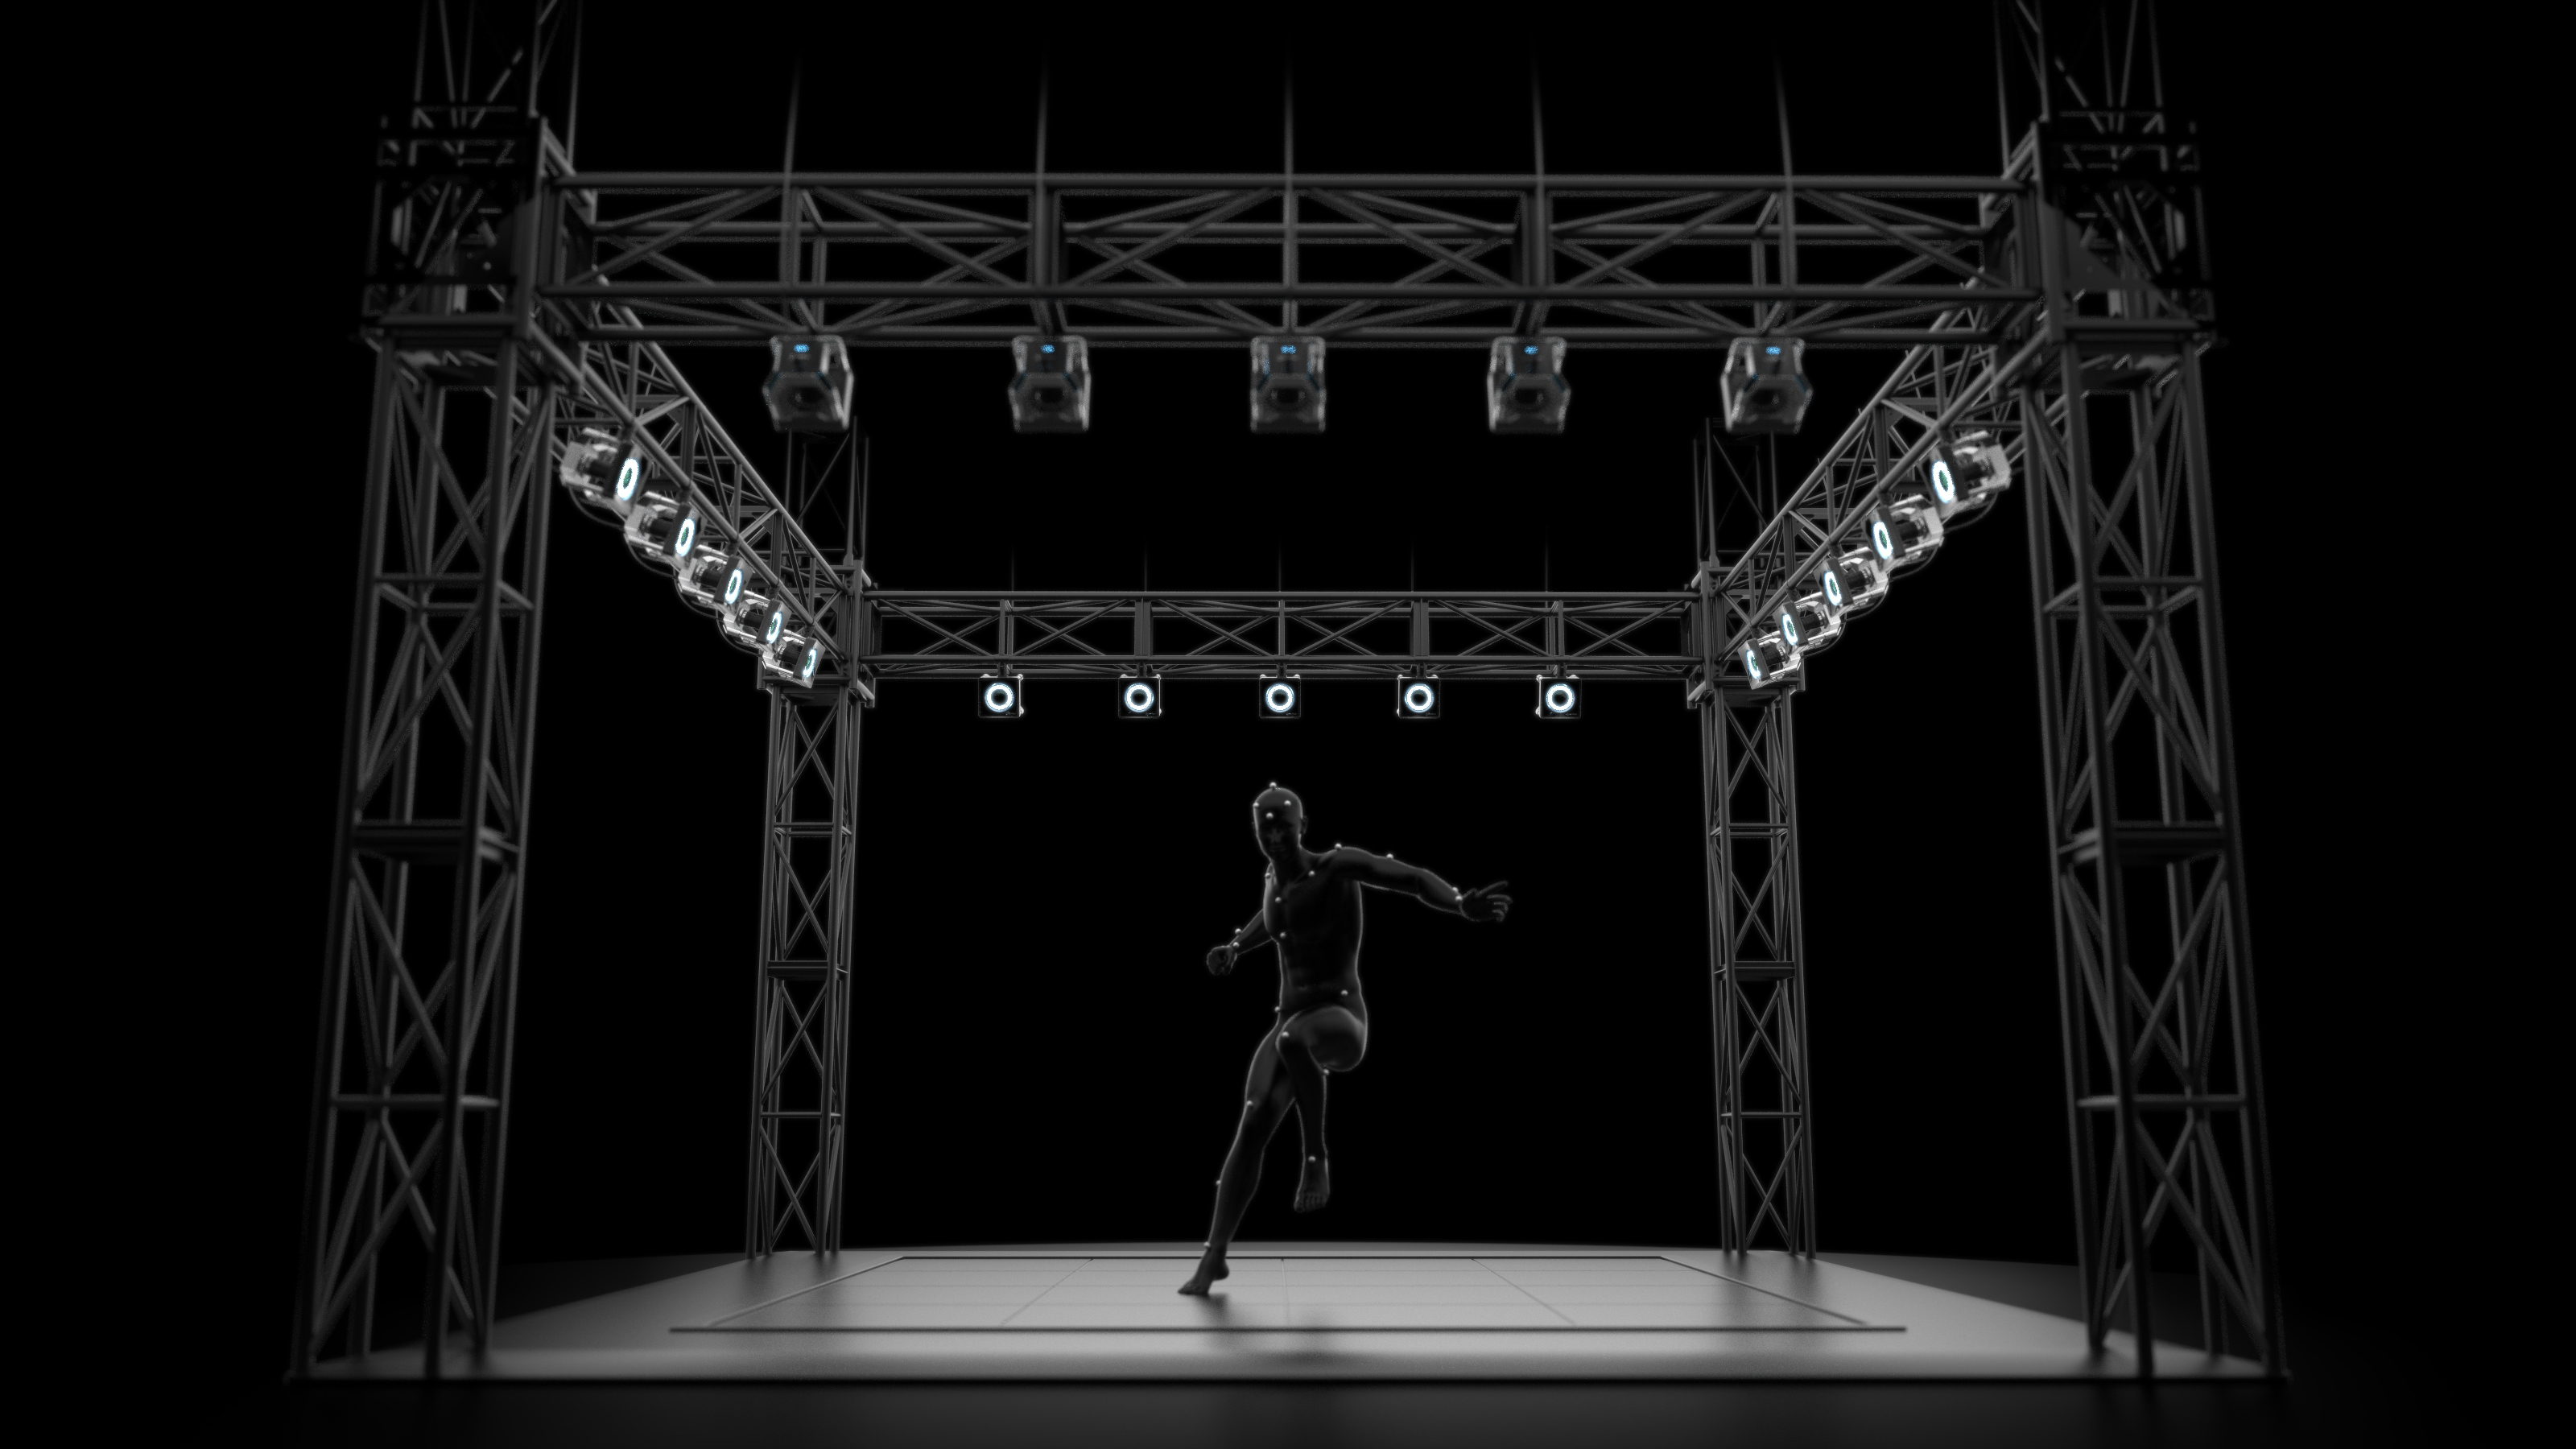 priority_designs_motion_capture_camera_design_and_development_013